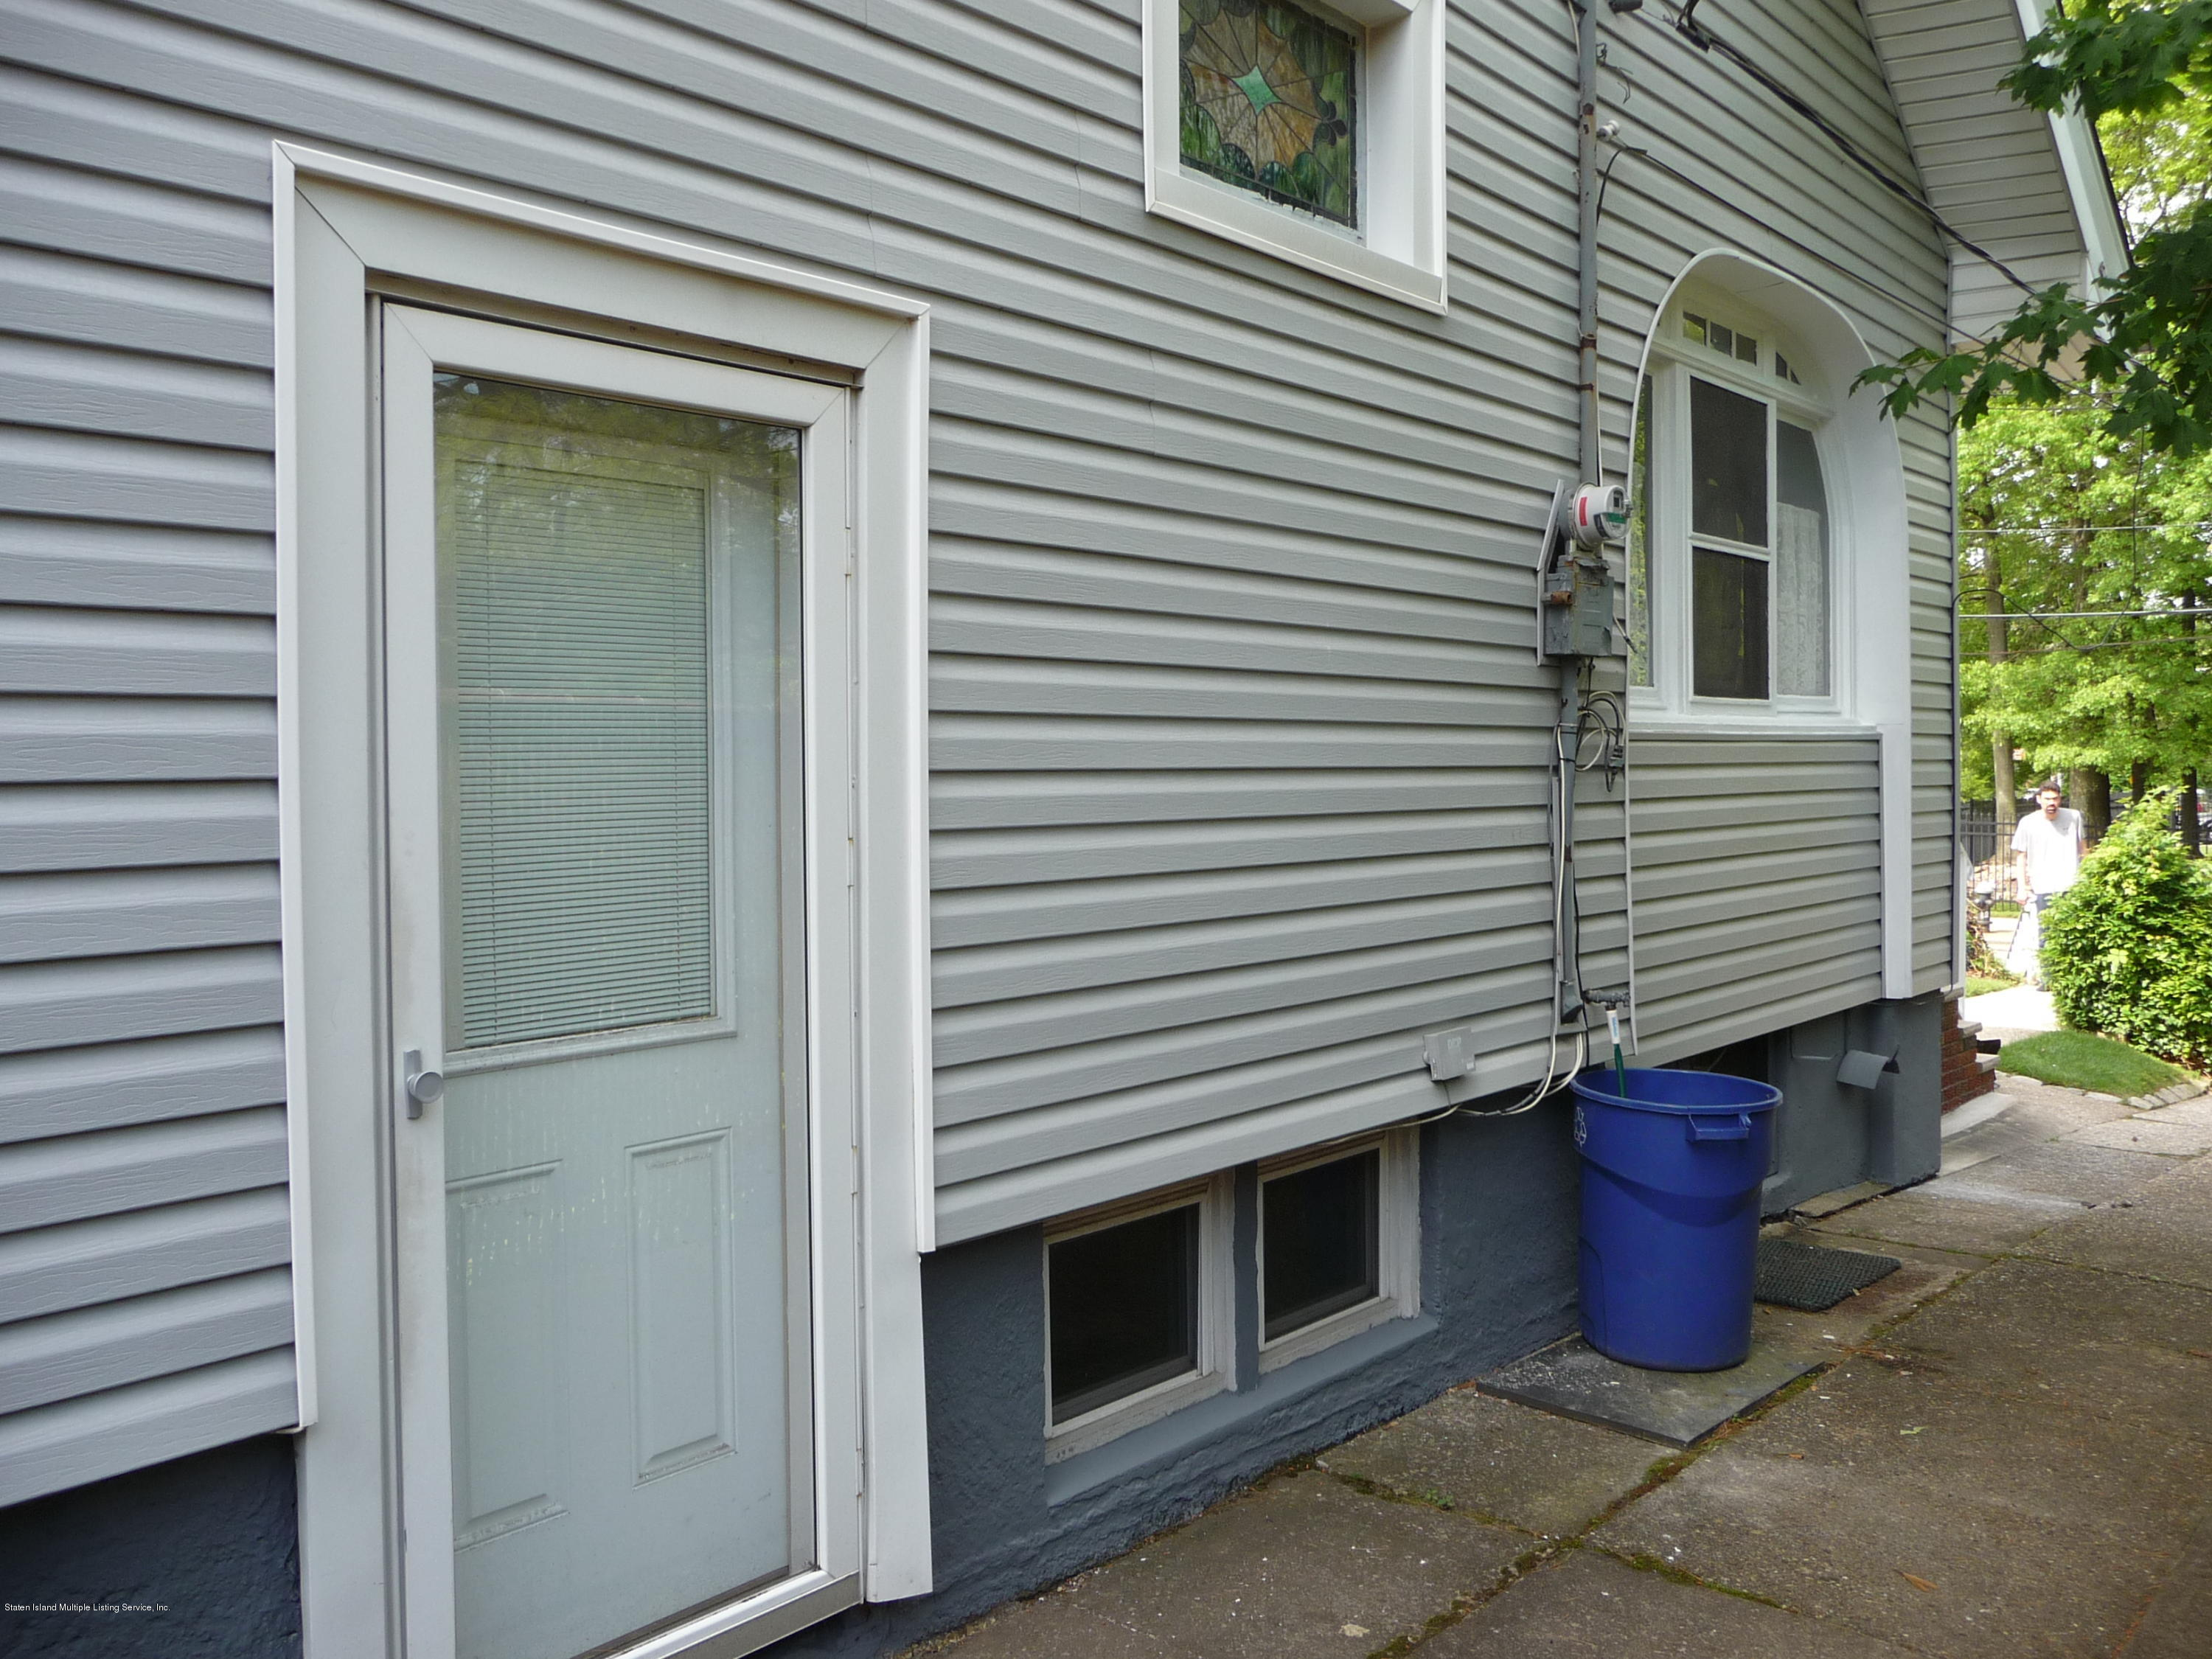 Single Family - Detached 77 Todt Hill Road  Staten Island, NY 10314, MLS-1129718-47